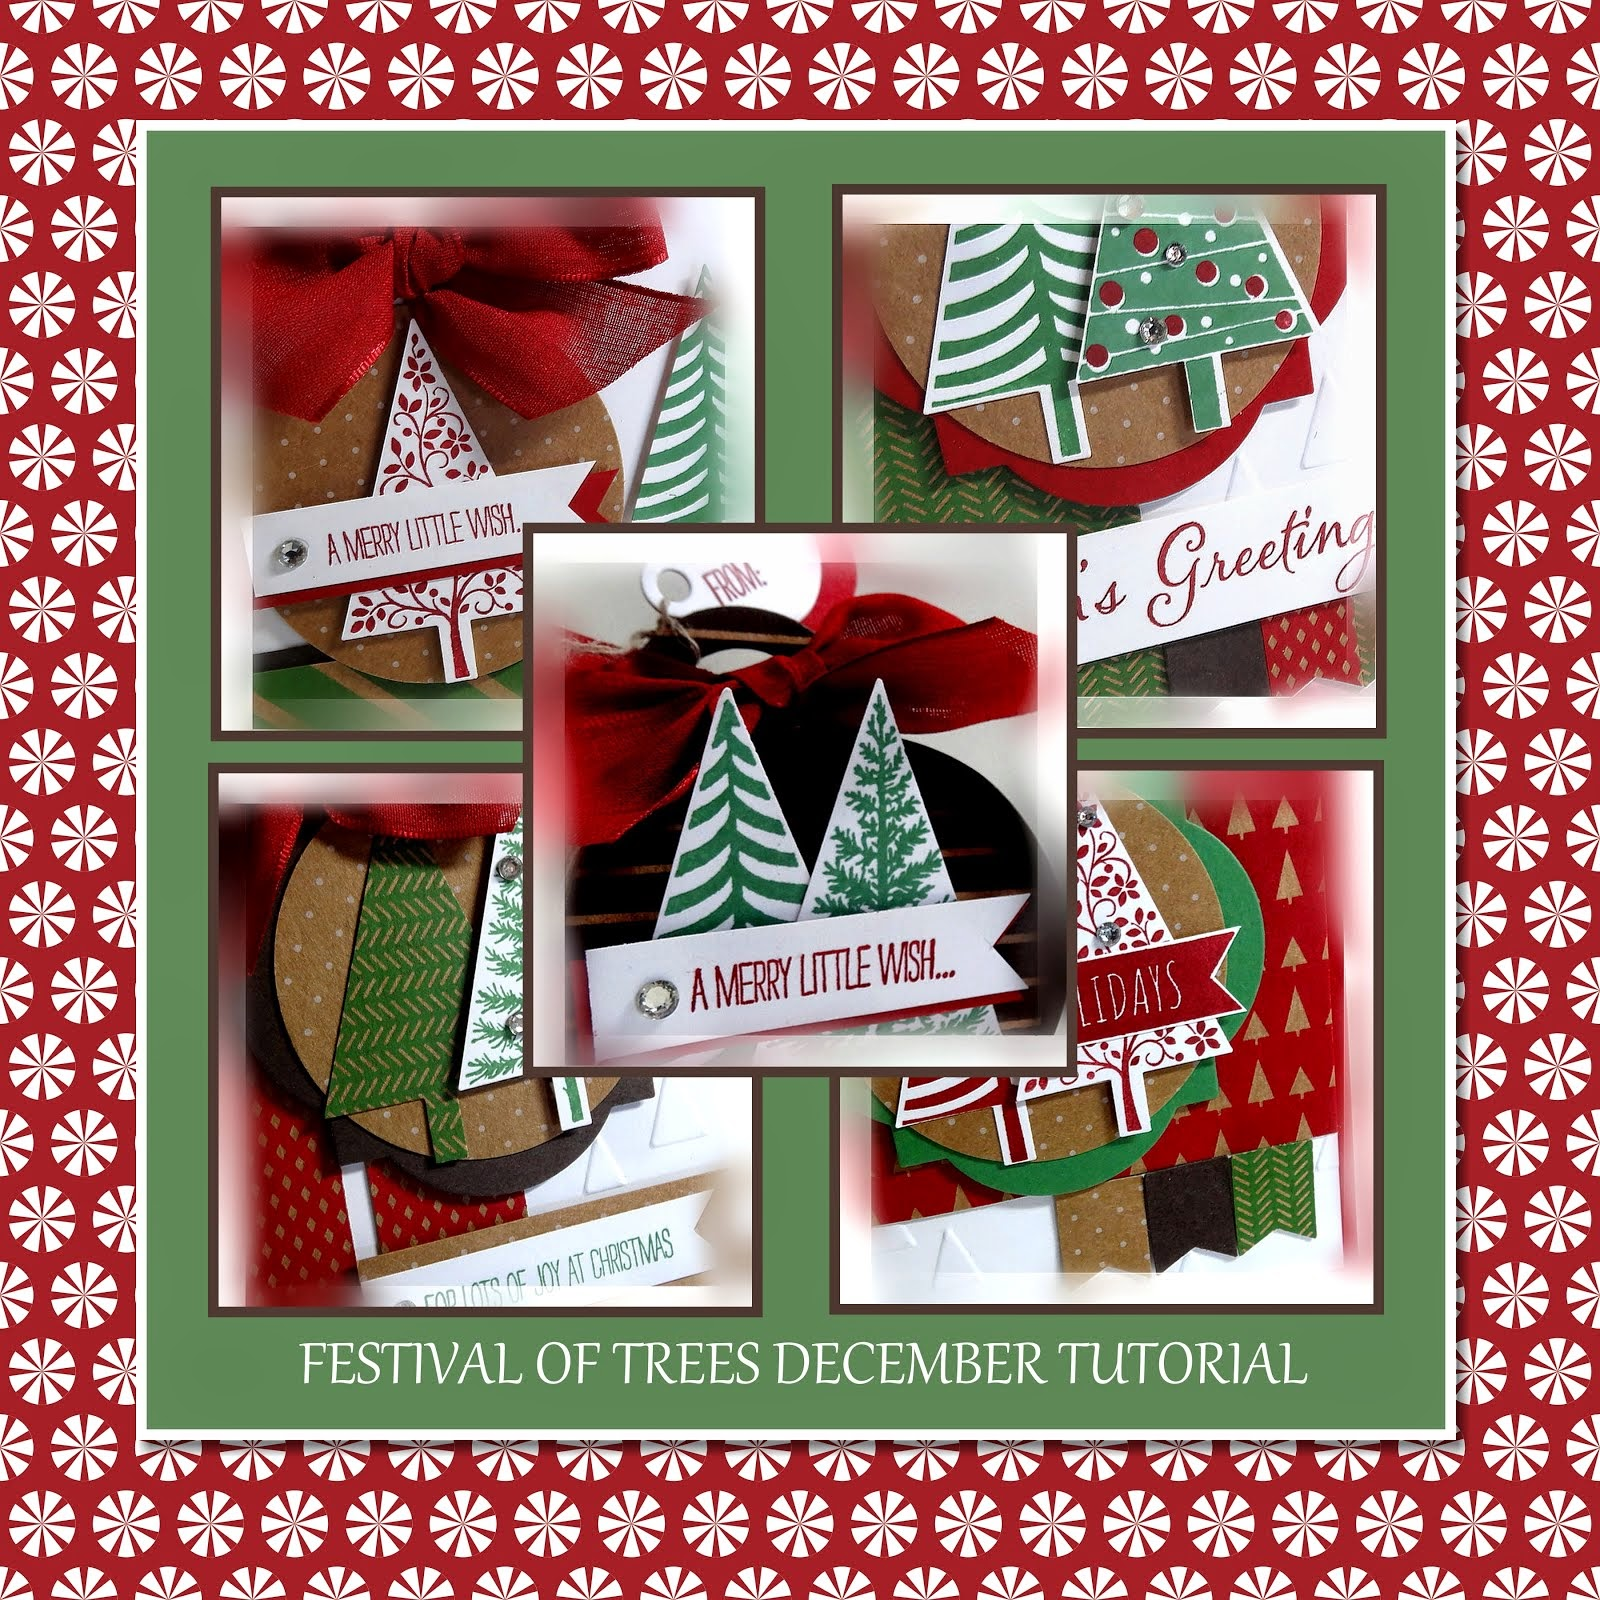 December 2014 Festival of Trees Tutorial